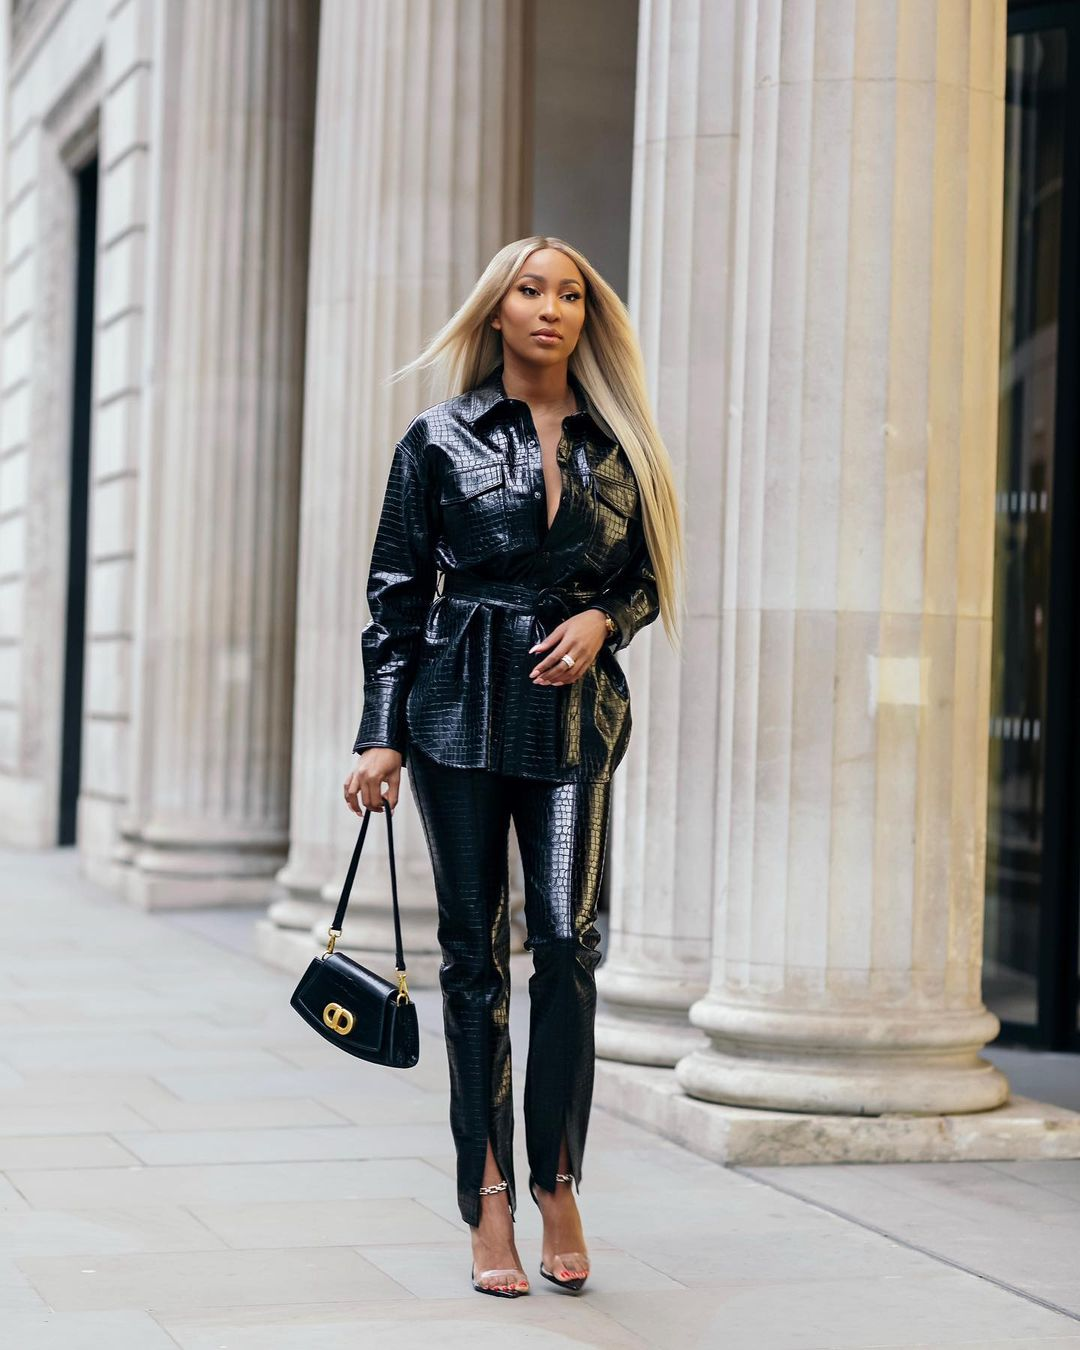 Toni Tone Look Gorgeous In Leather Overall